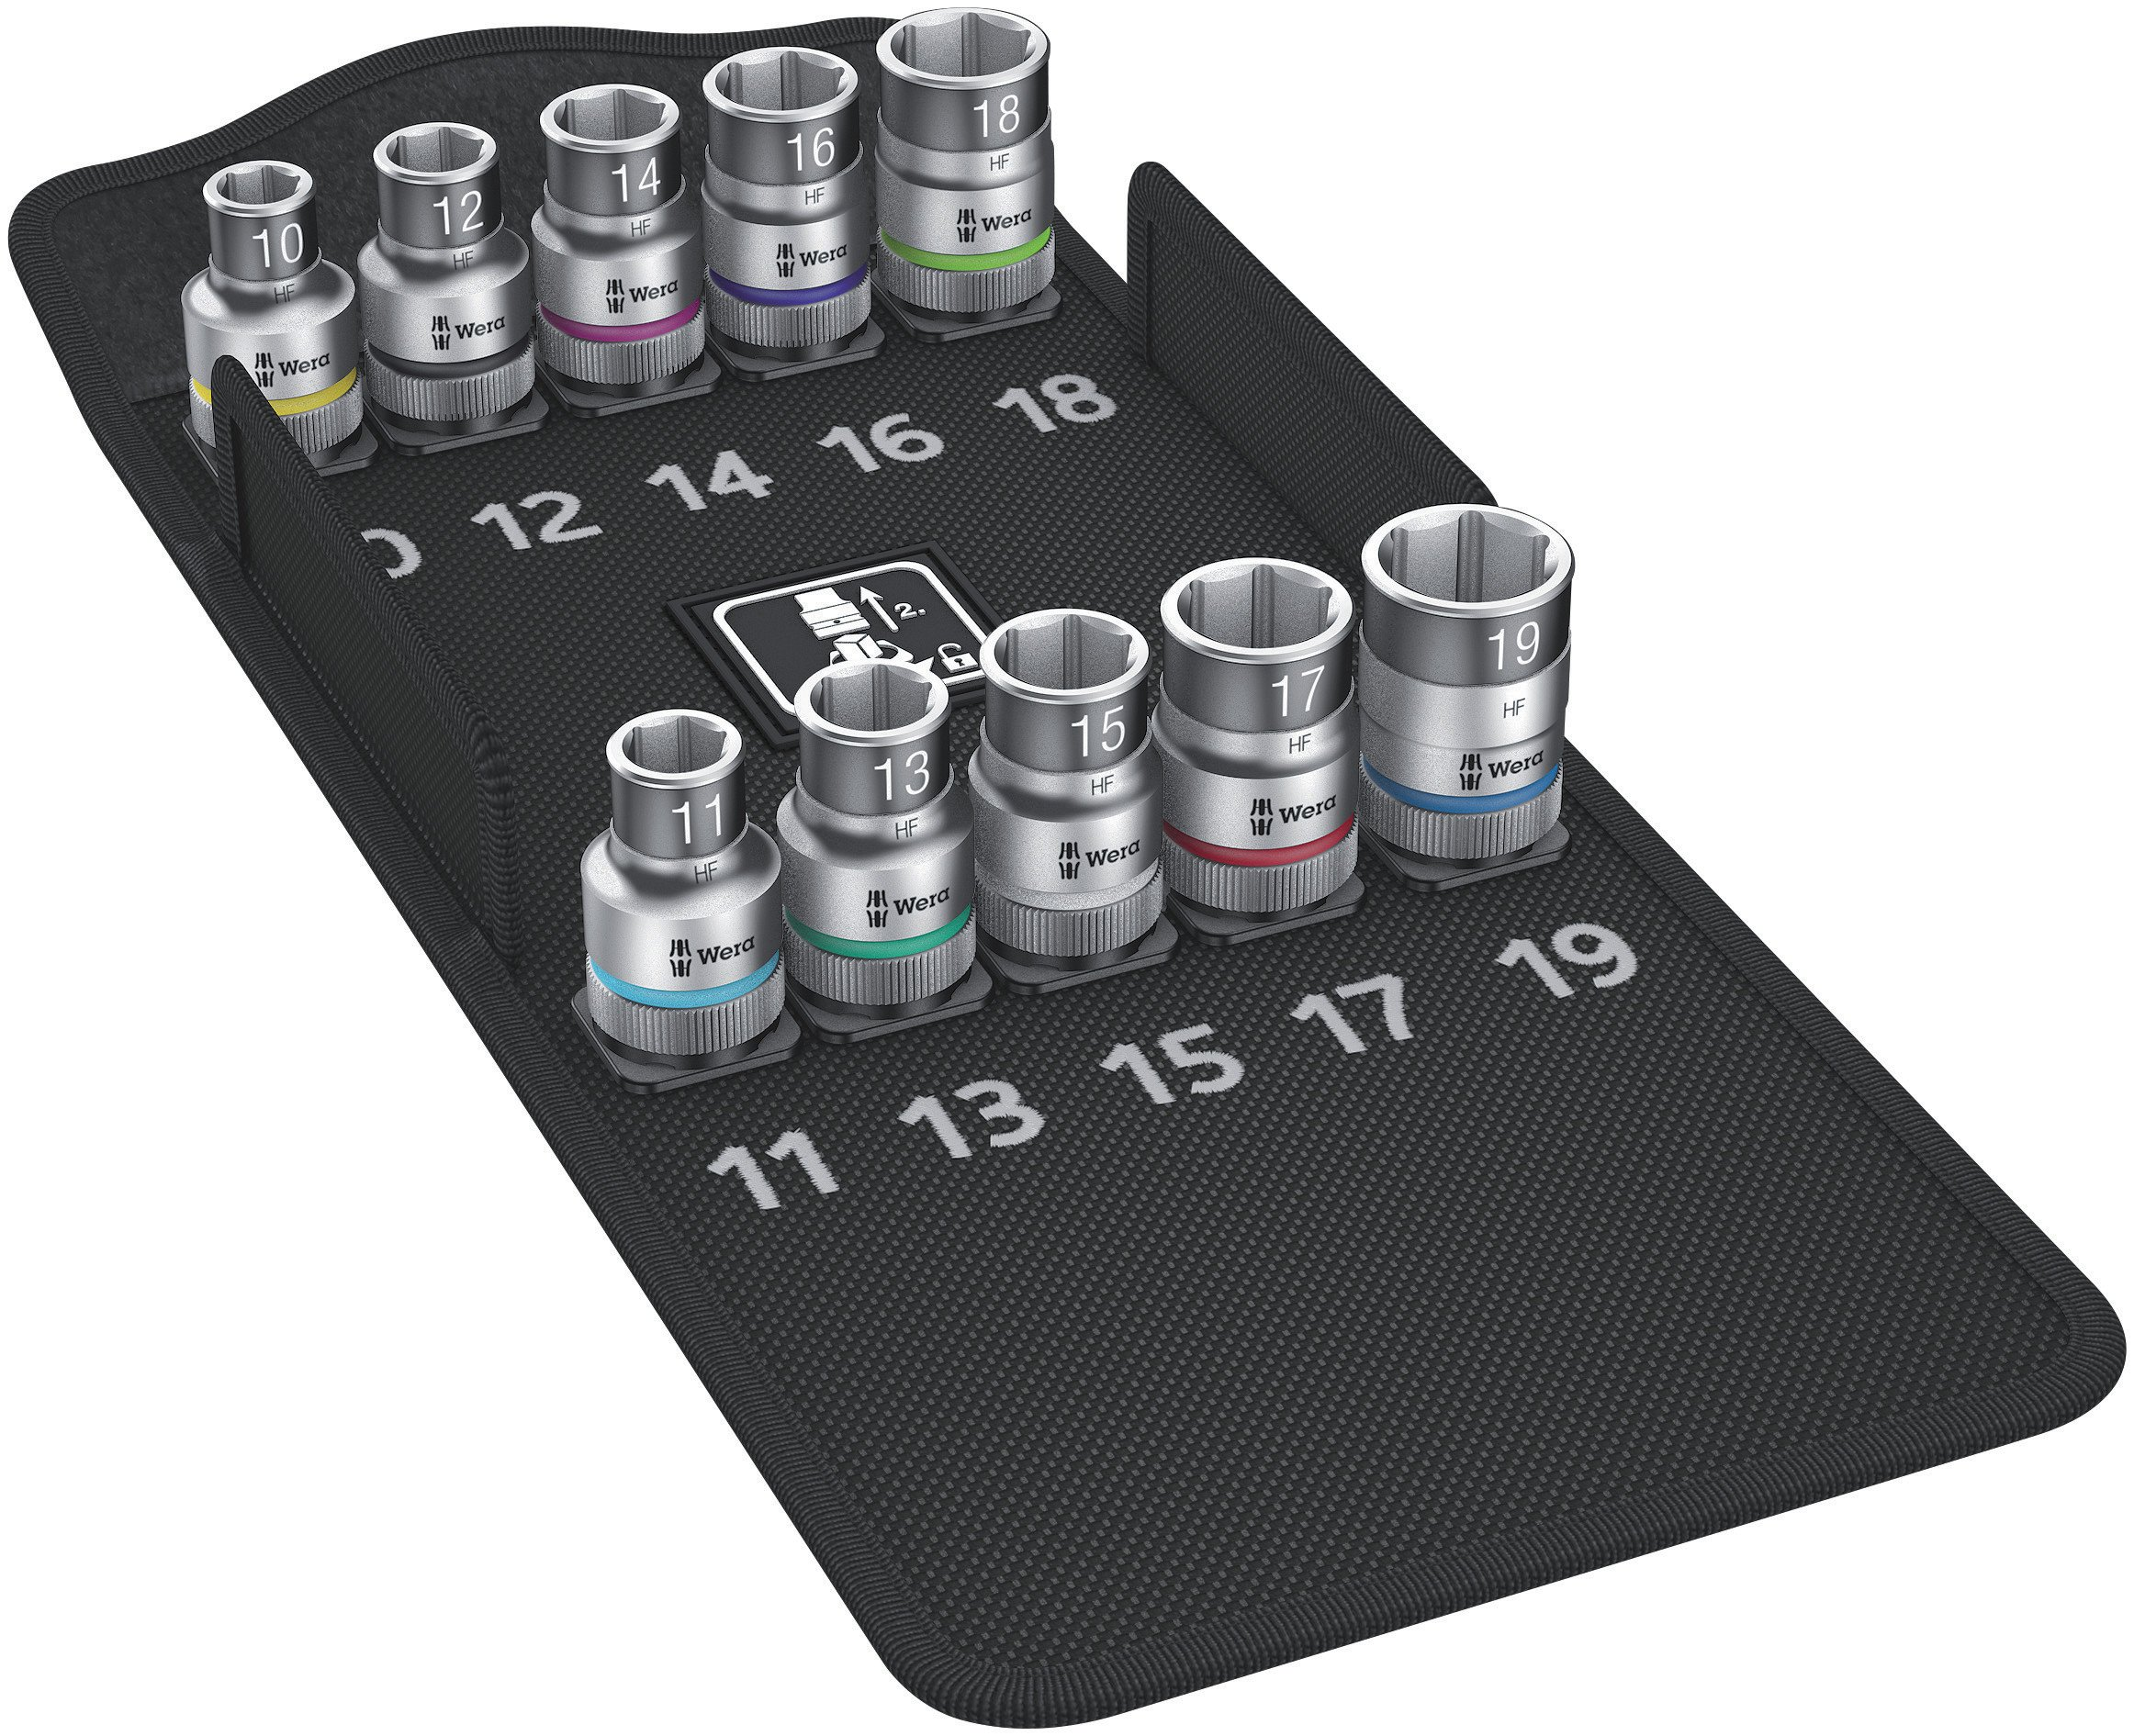 Wera 05004203001 8790 Hmc Hf 1 Zyklop Socket Set with 1/2'' Drive with Holding Function, 10 Pieces